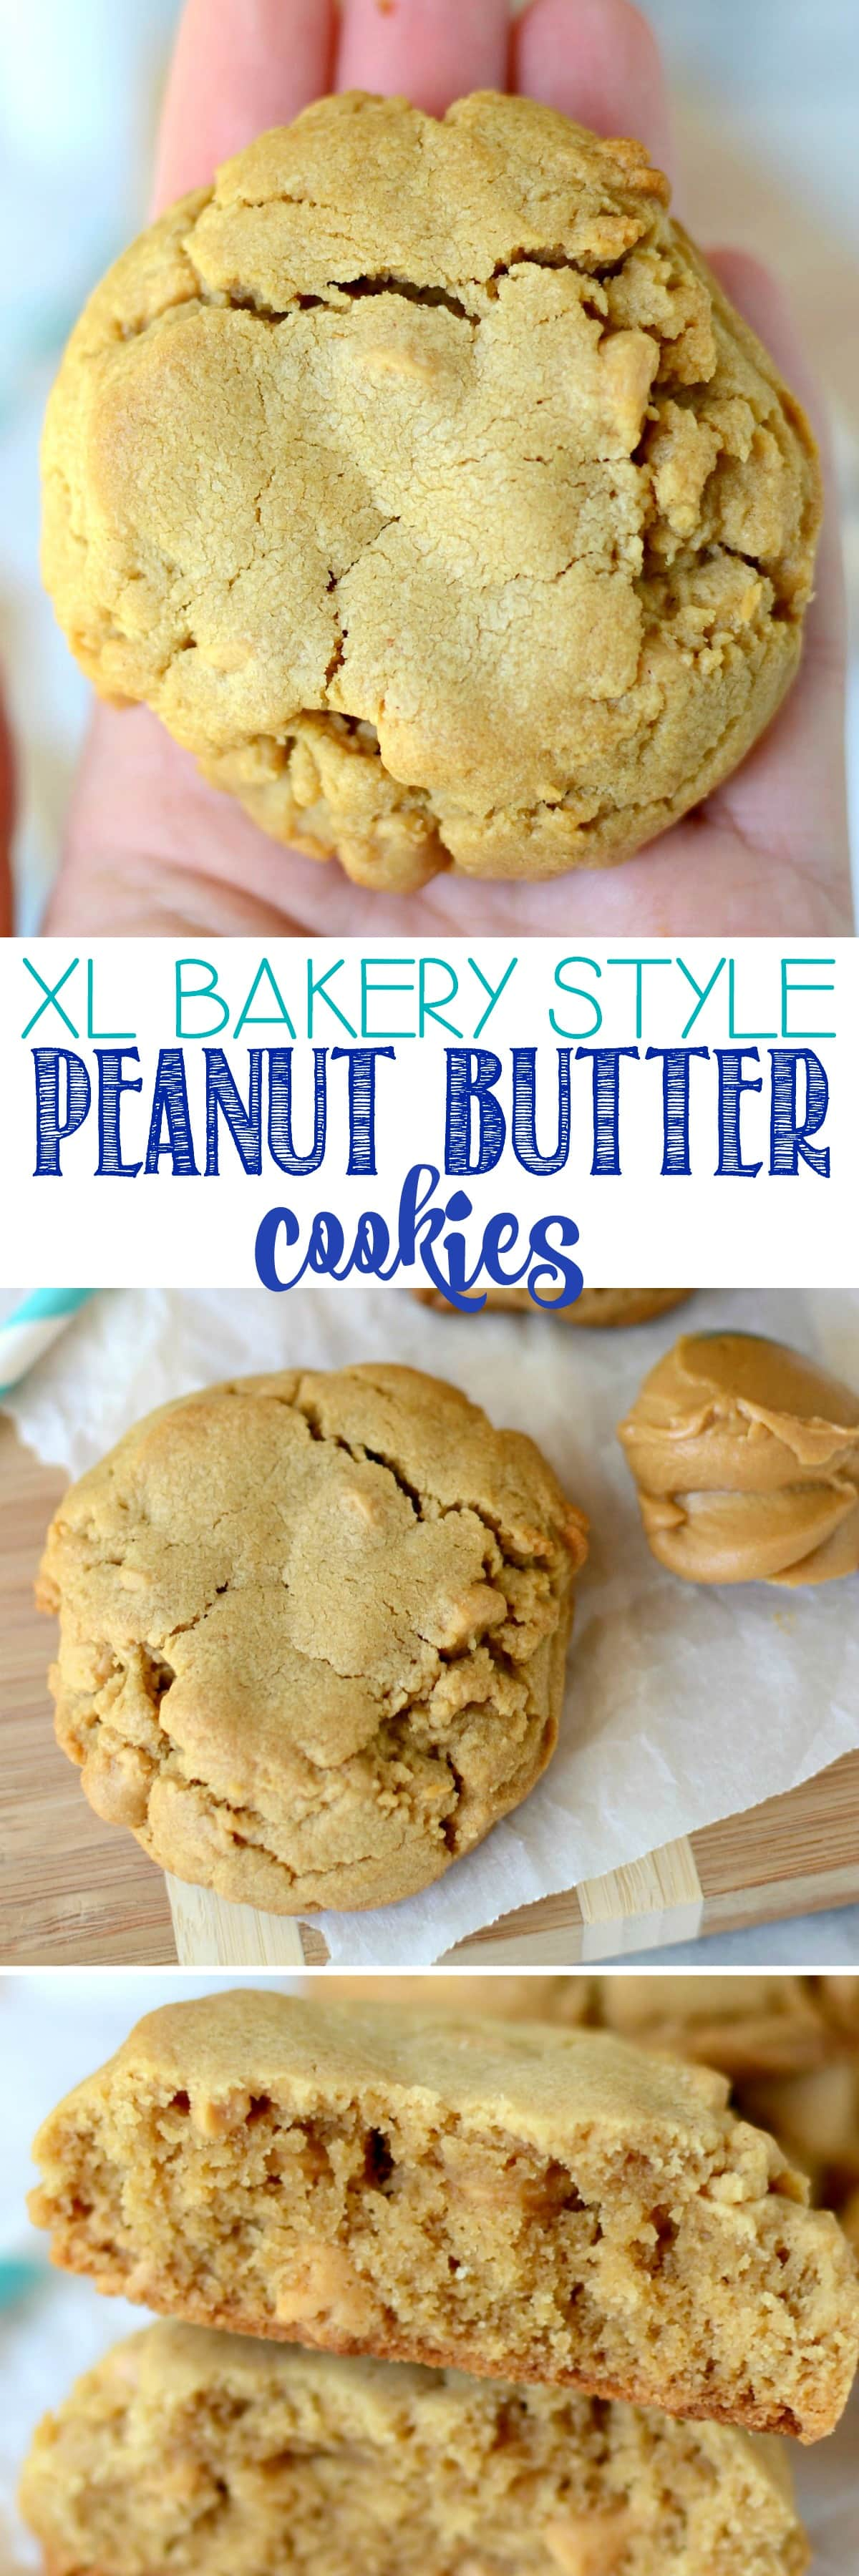 Xl Bakery Style Peanut Butter Cookies Recipe Cookies